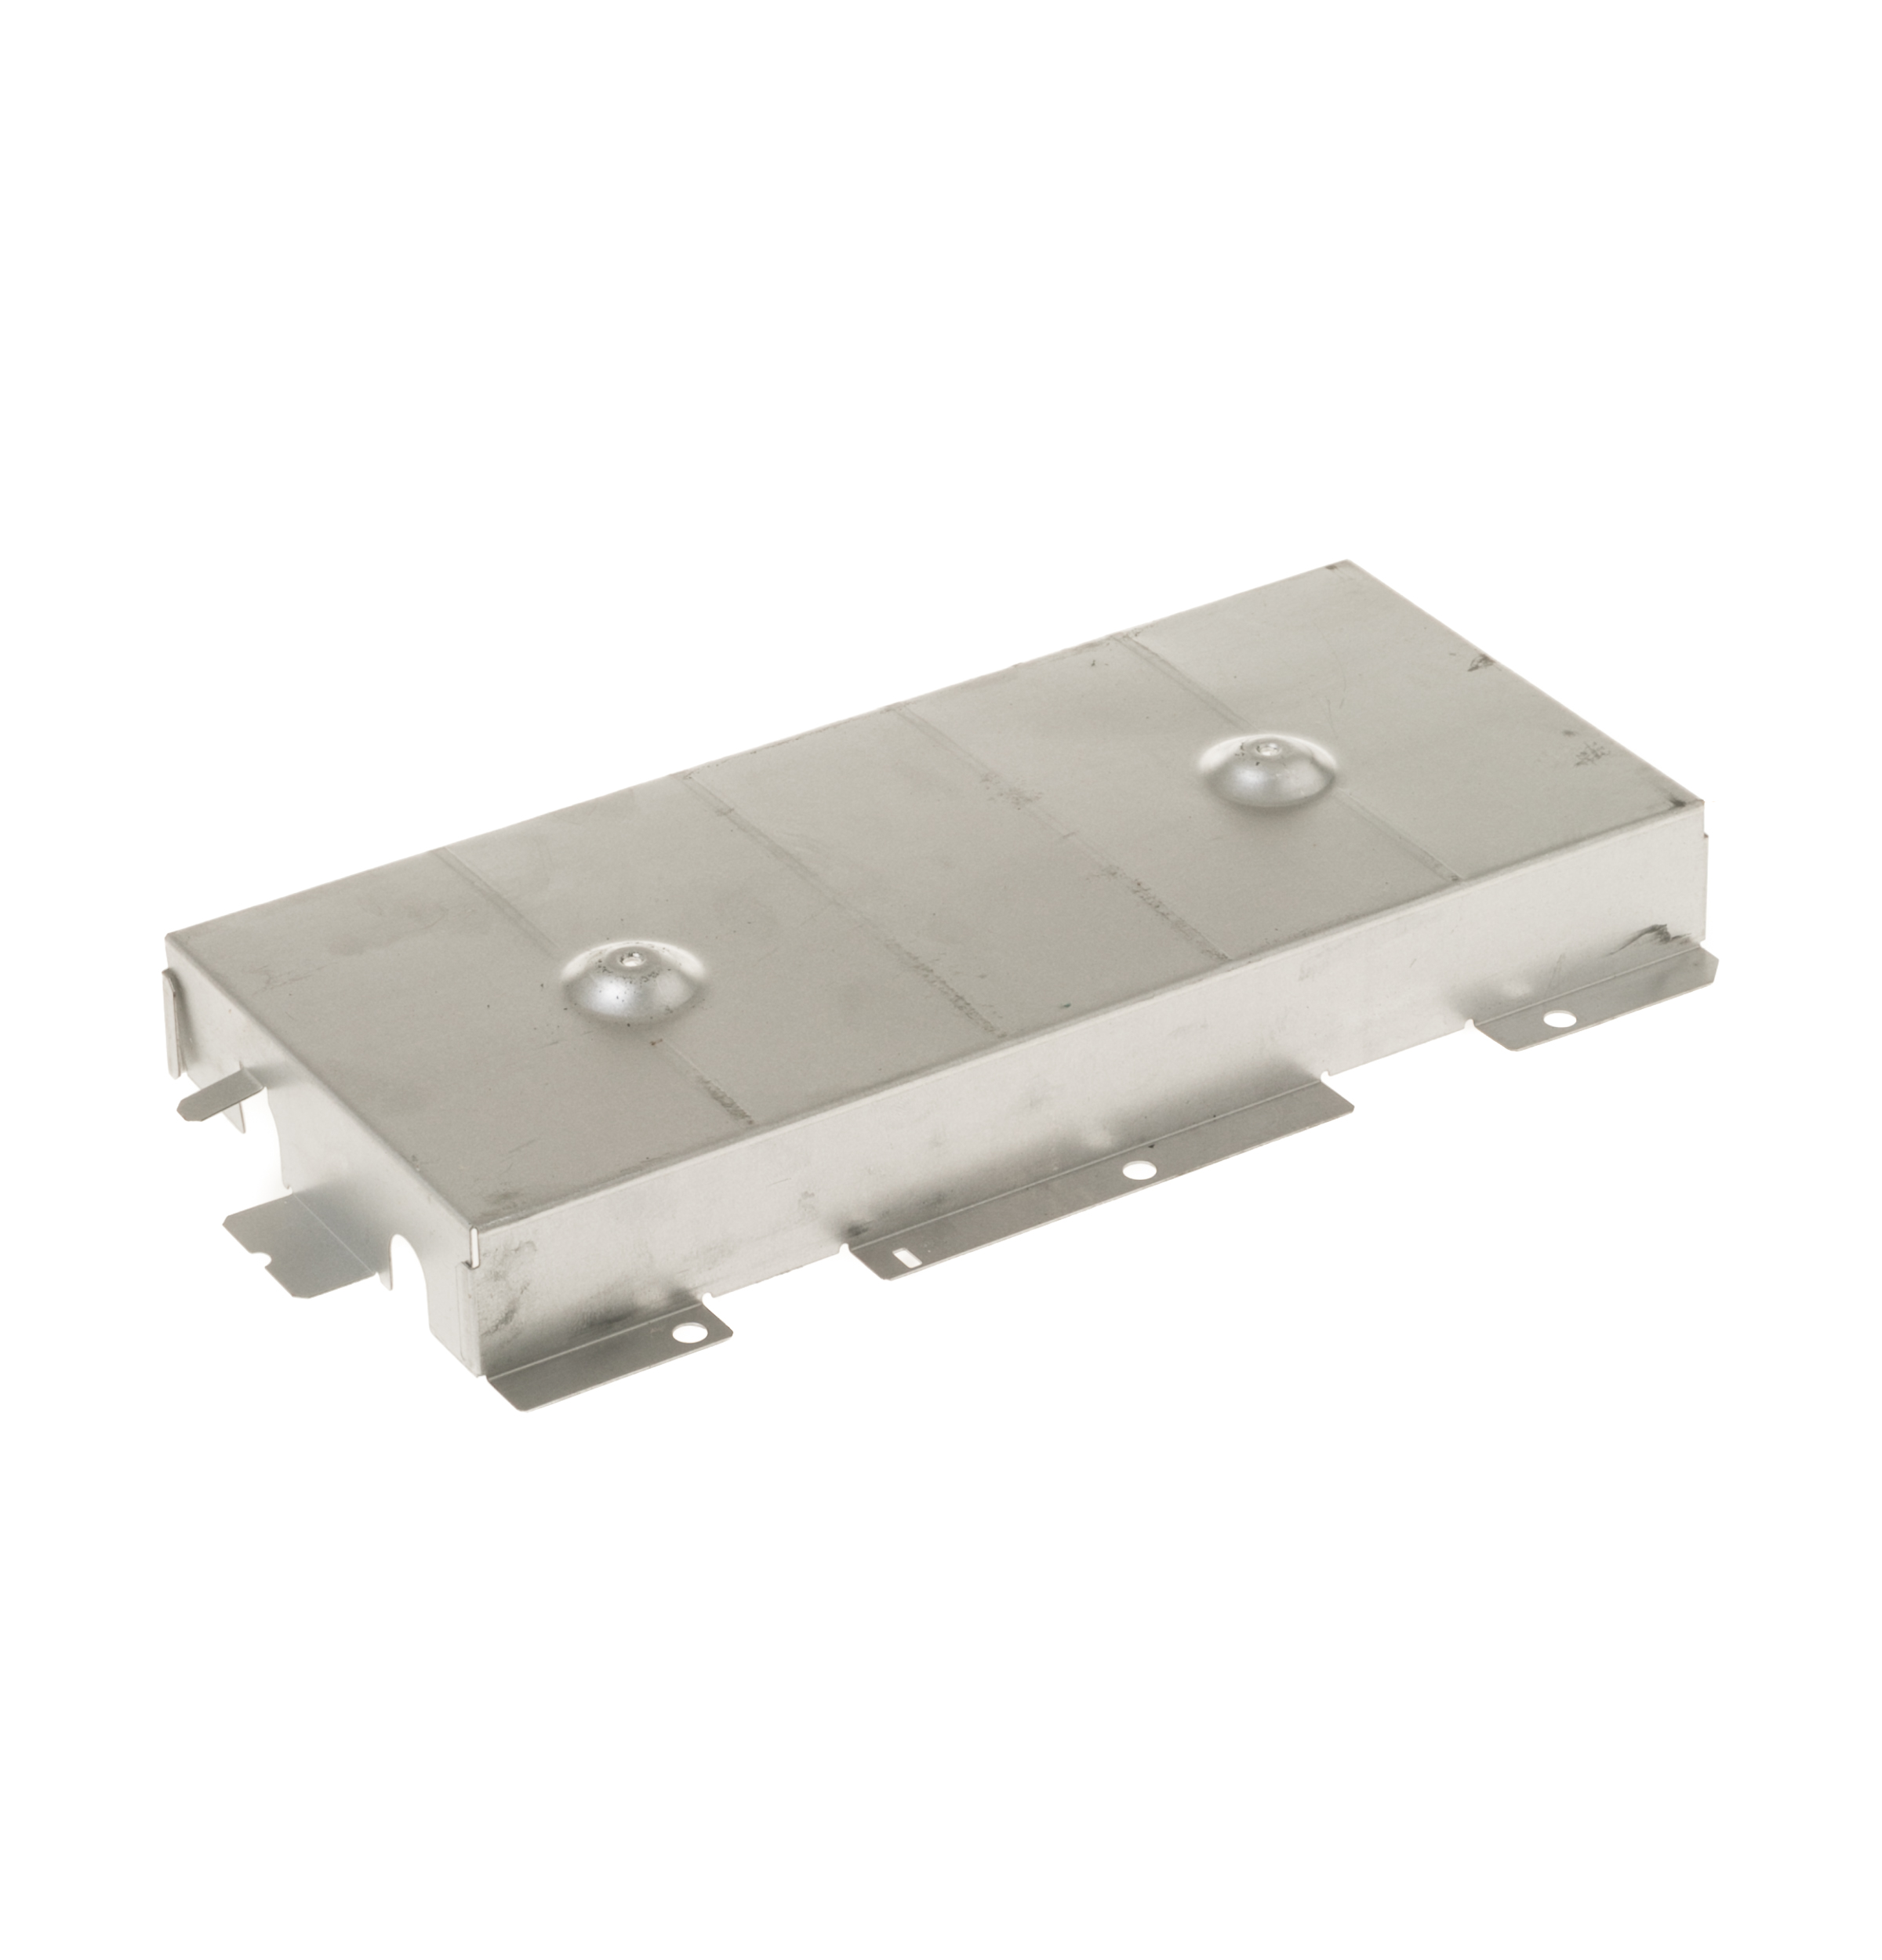 Wb06x10643 Microwave Heater Cover